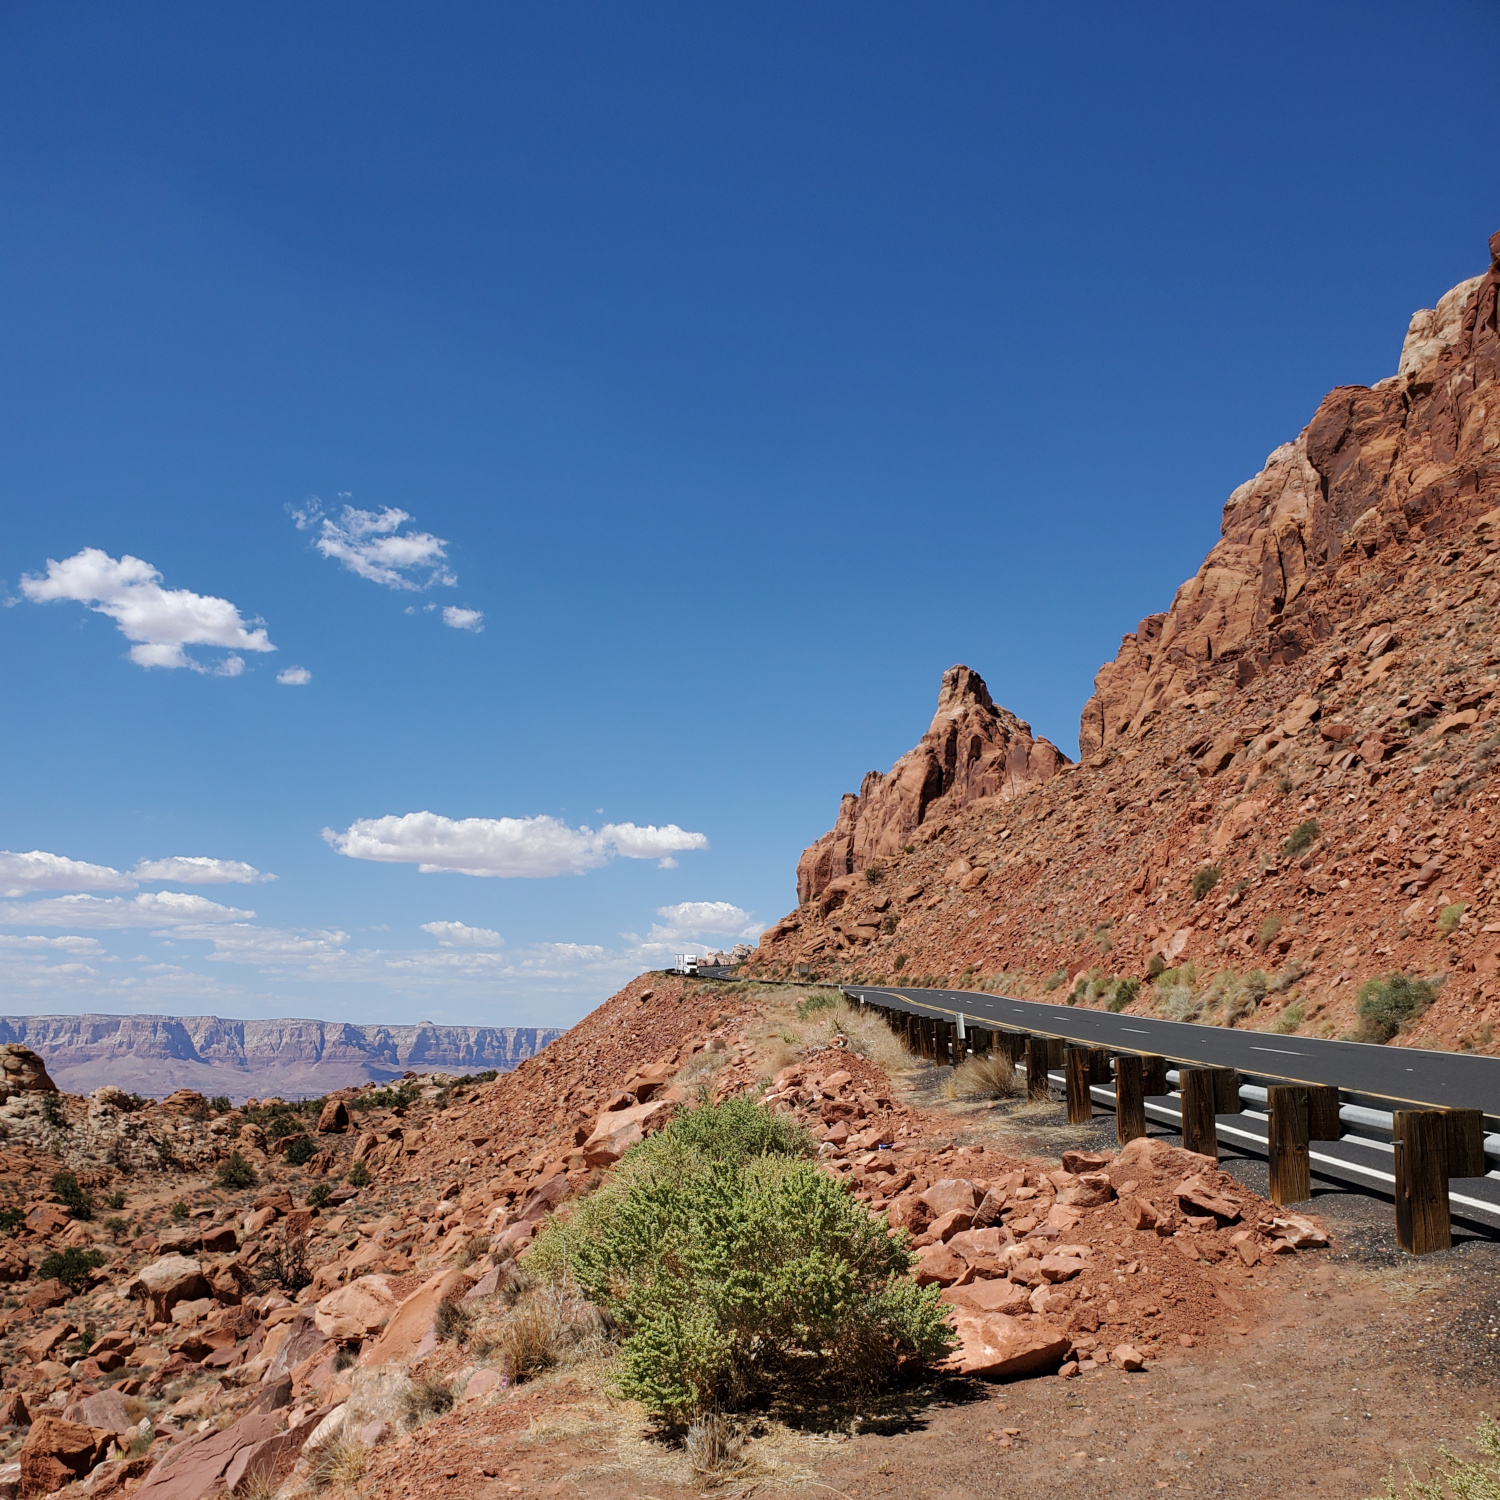 The mountain road and views of northern Arizona